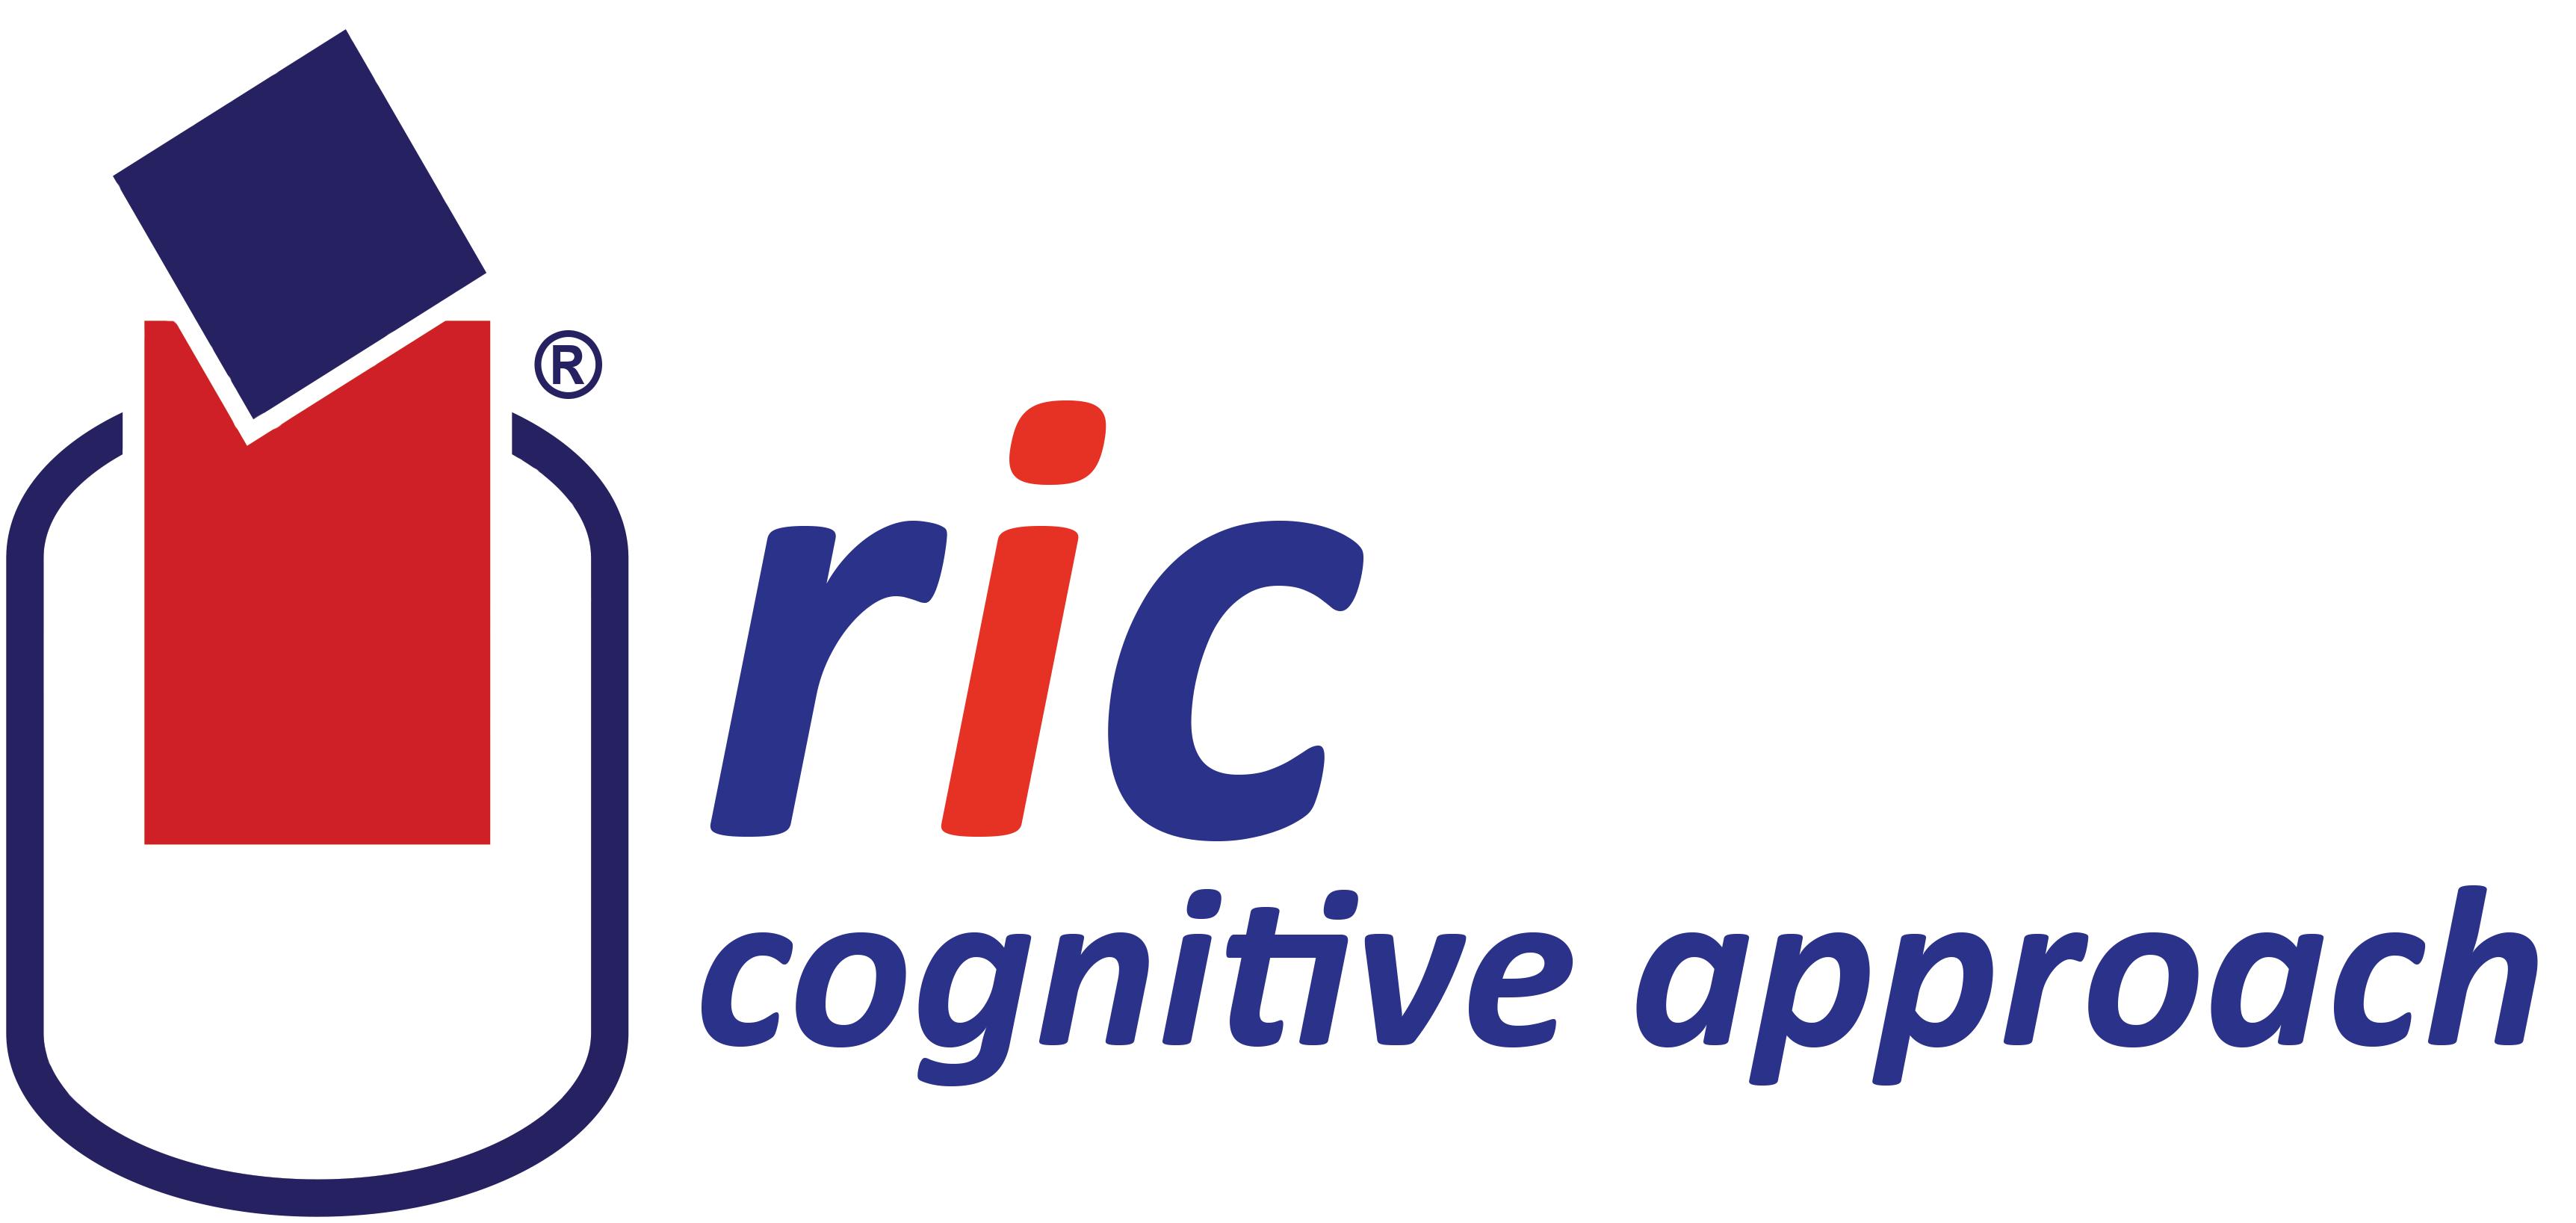 RIC Cognitive Approach